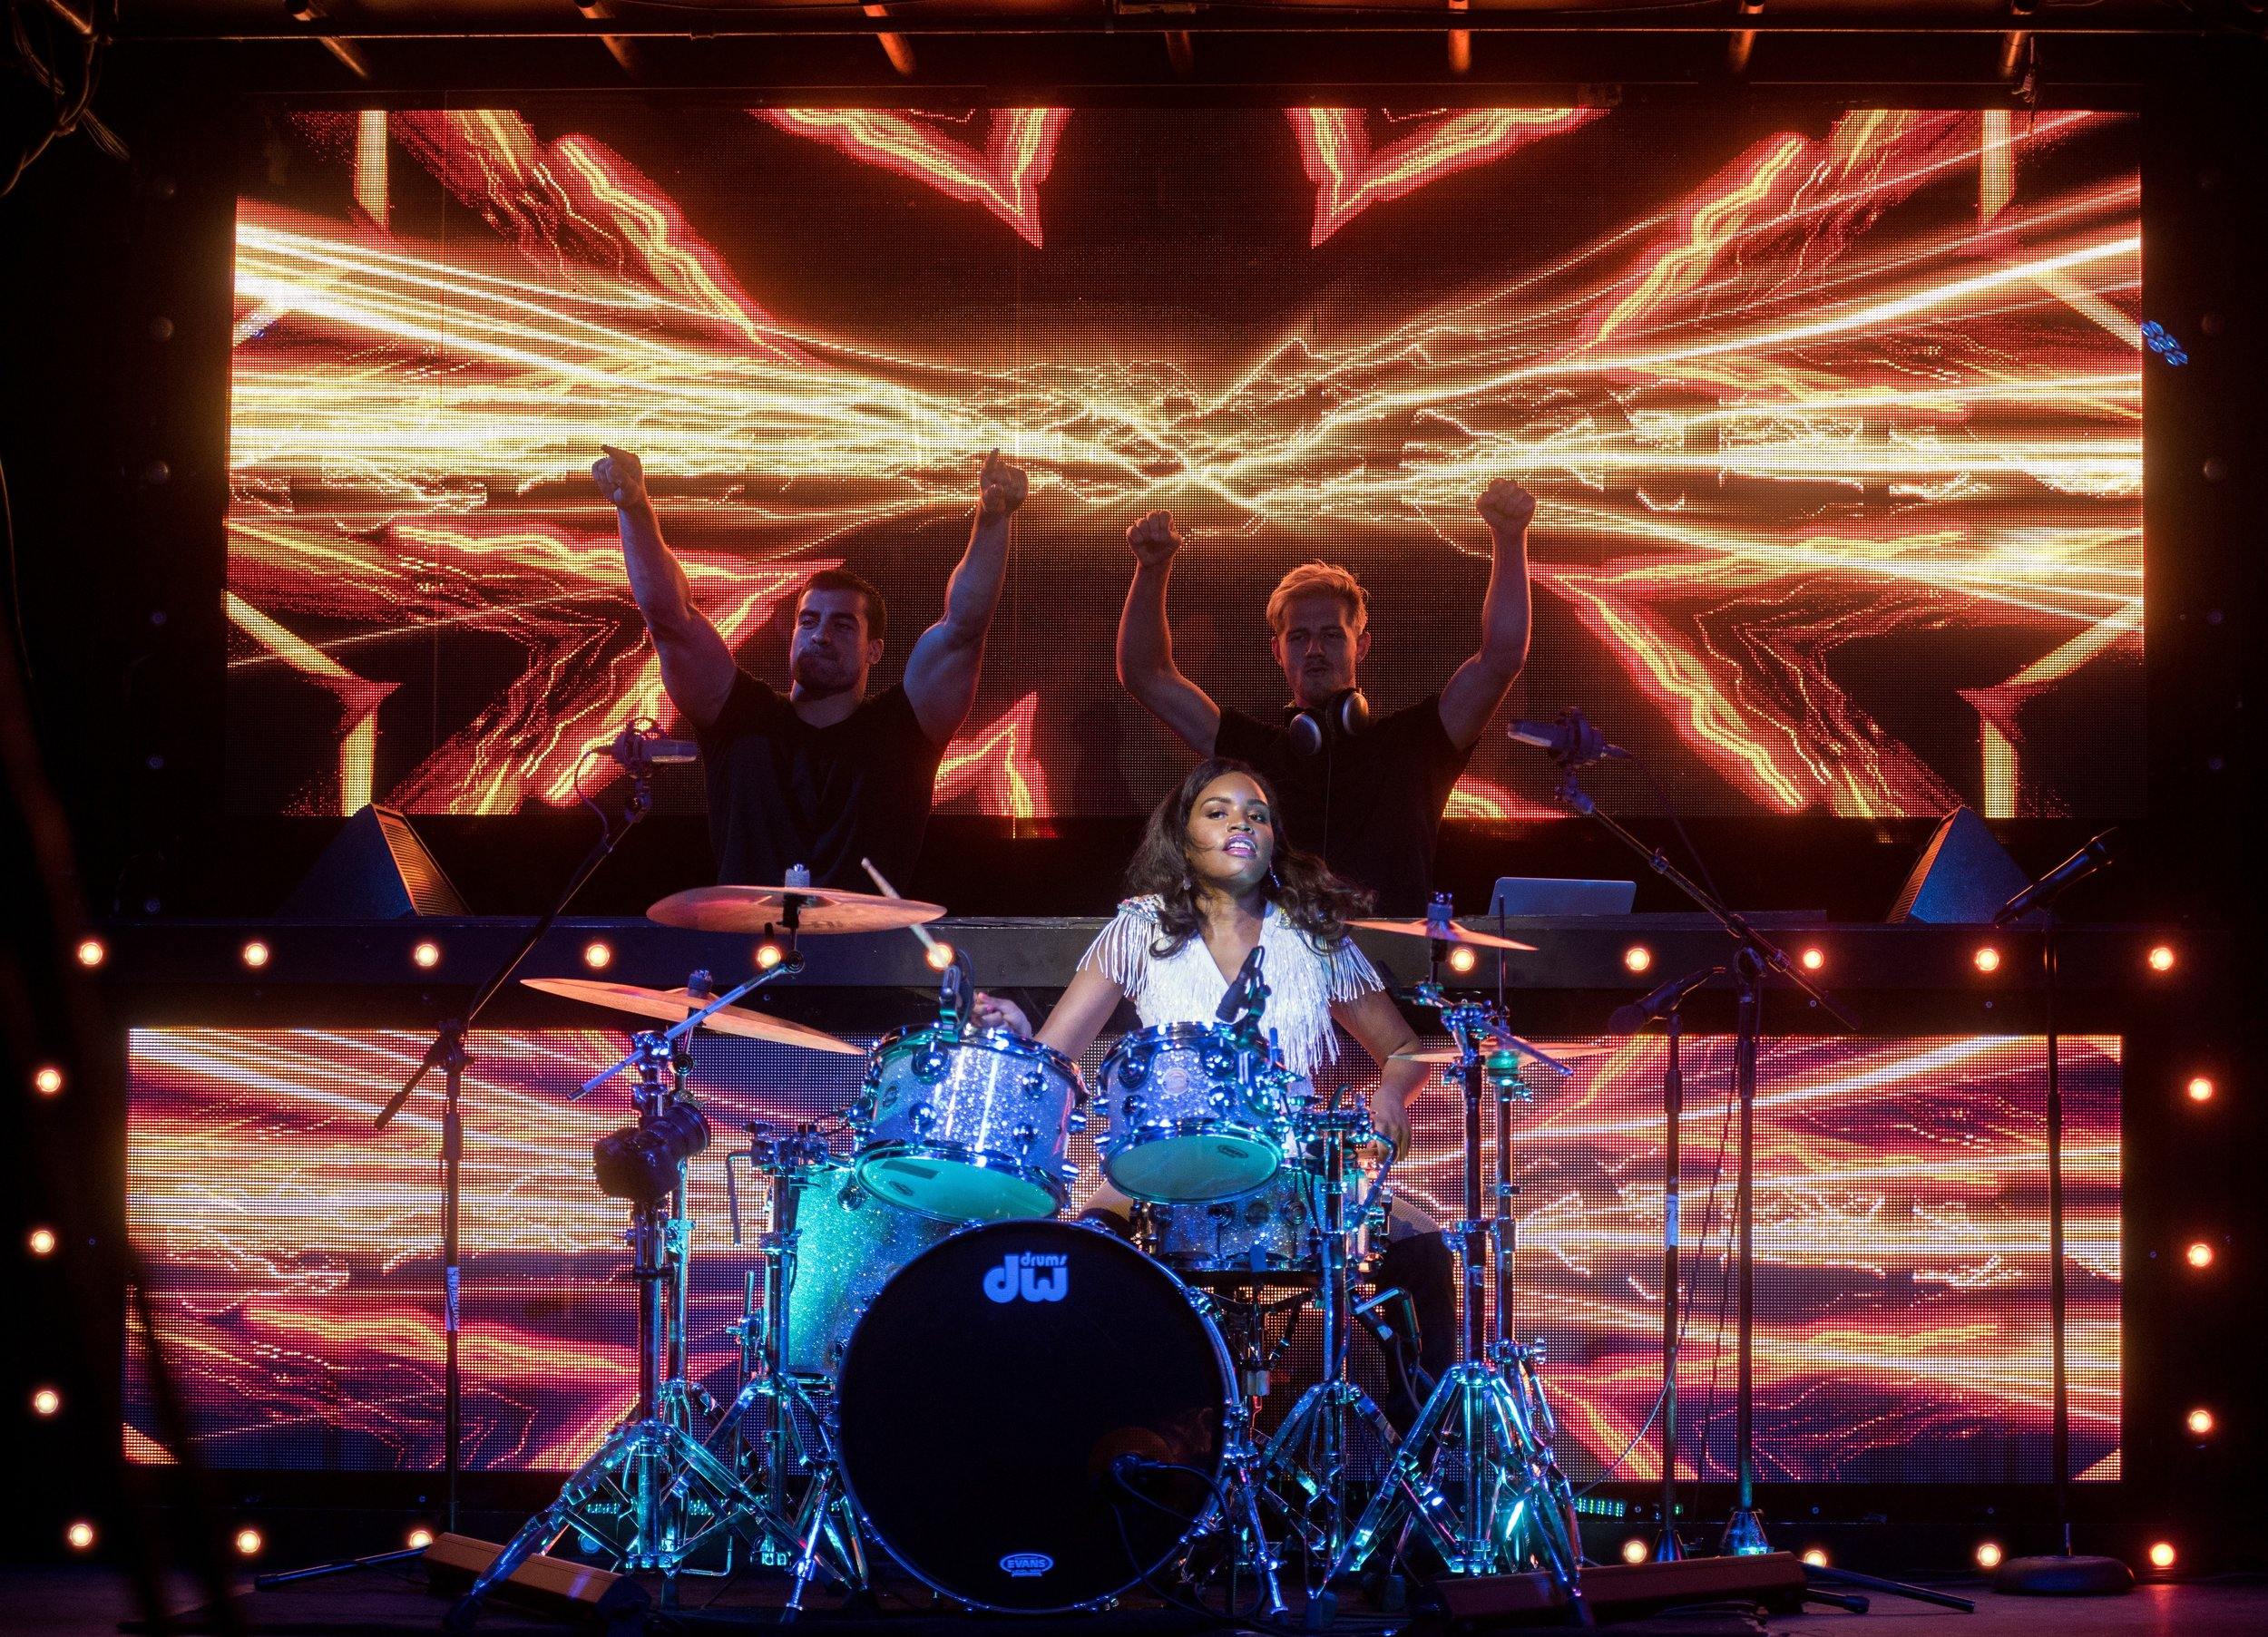 Glorious-Singer-Livetronica Drummer-Producer-Songwriter-Marquee-Nightclub-Video-New York-NY-48b.jpg